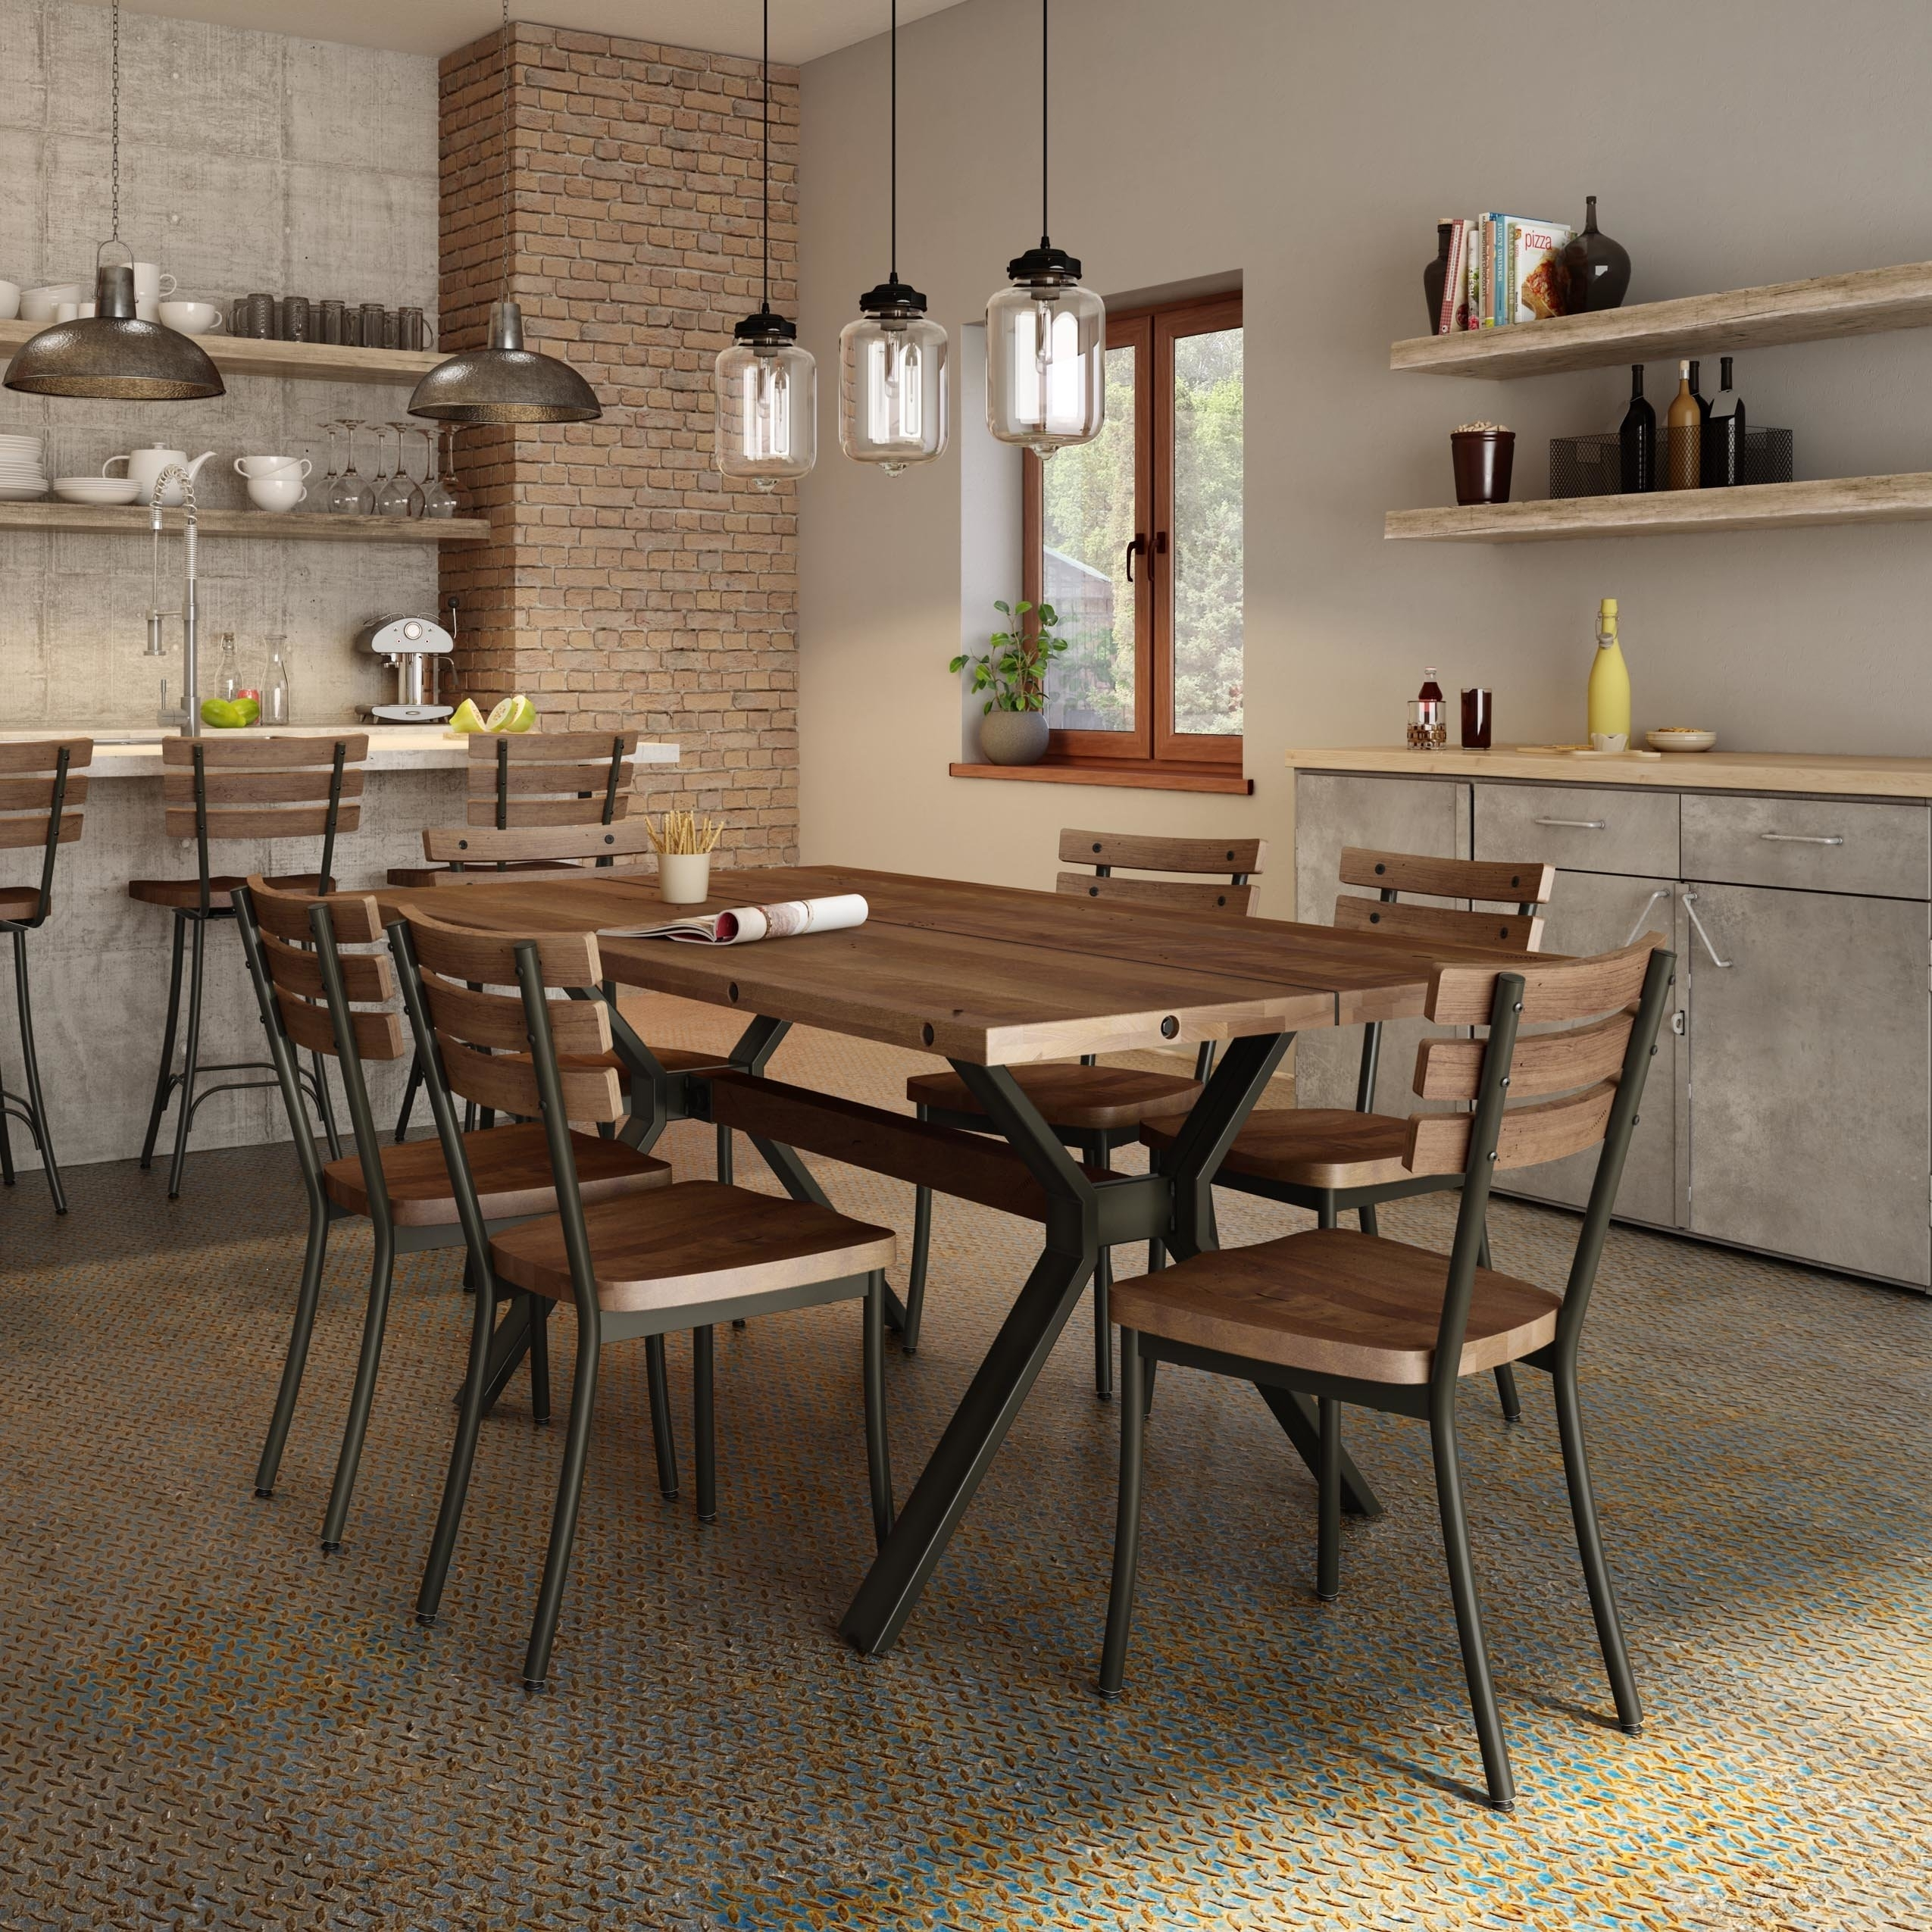 17 Stories Darcelle 5 Piece Industrial Dining Set | Wayfair Within Newest Laurent 5 Piece Round Dining Sets With Wood Chairs (View 10 of 20)